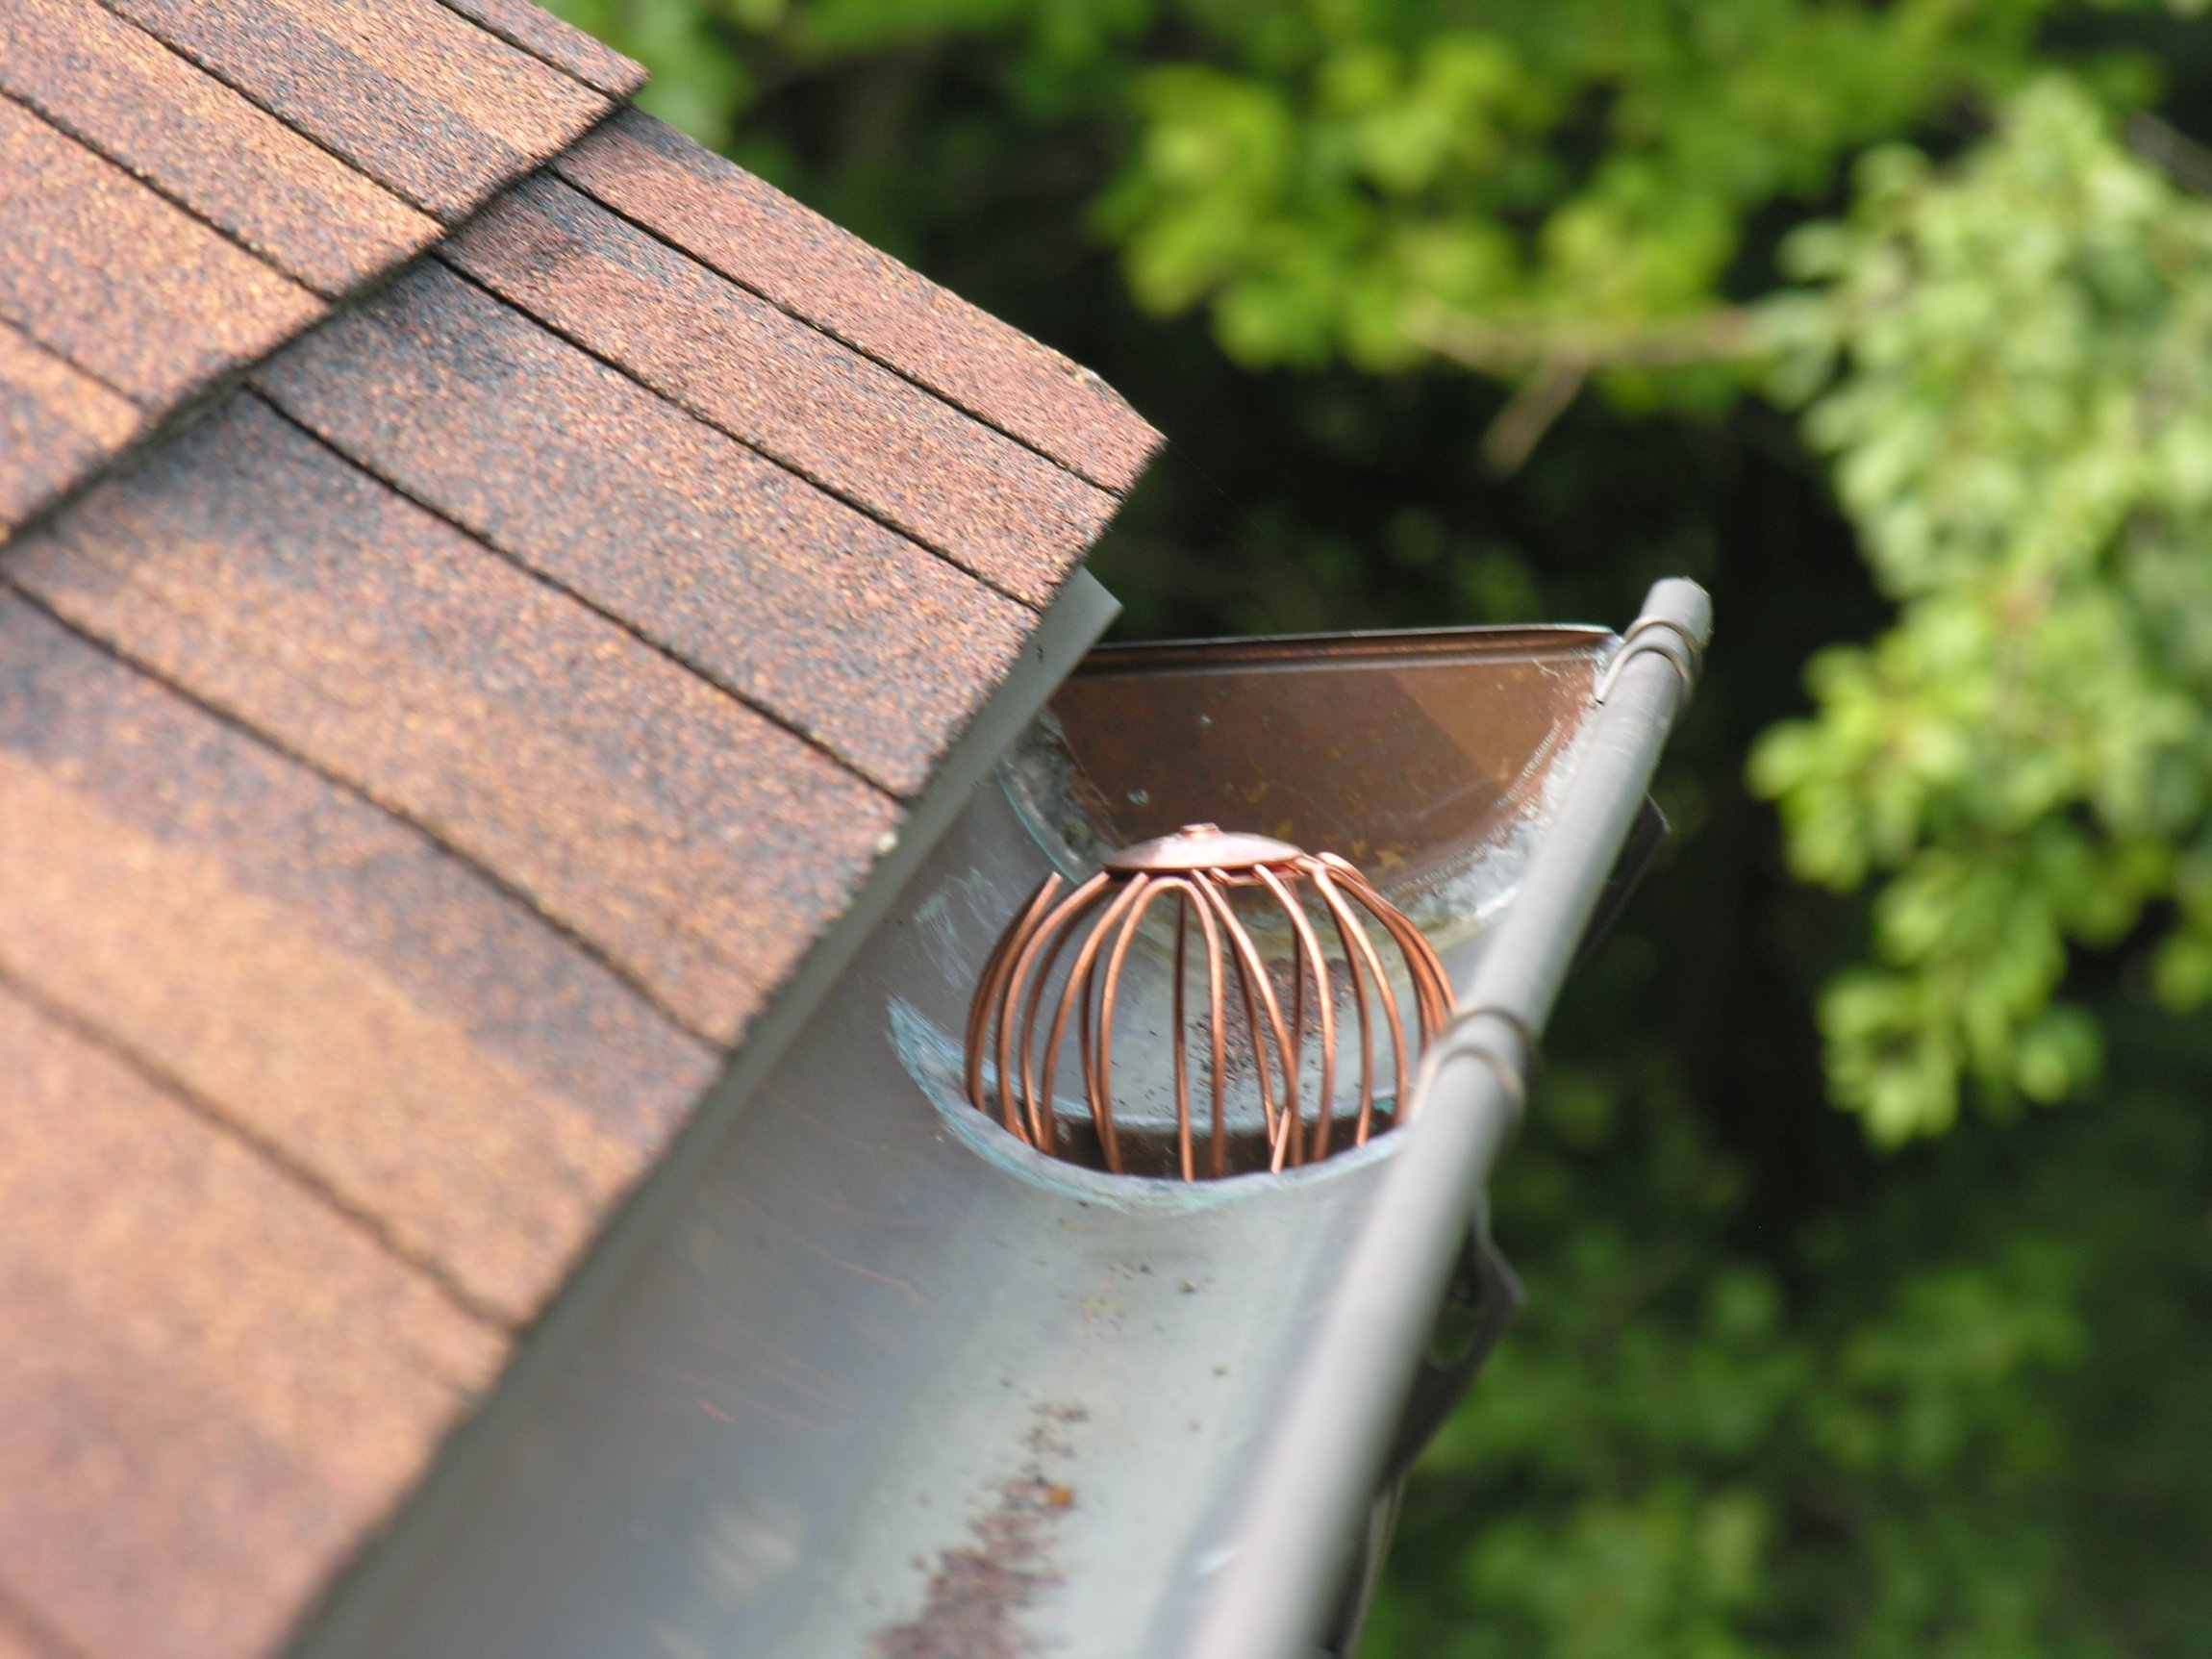 Euro Copper Wire Strainer In Action